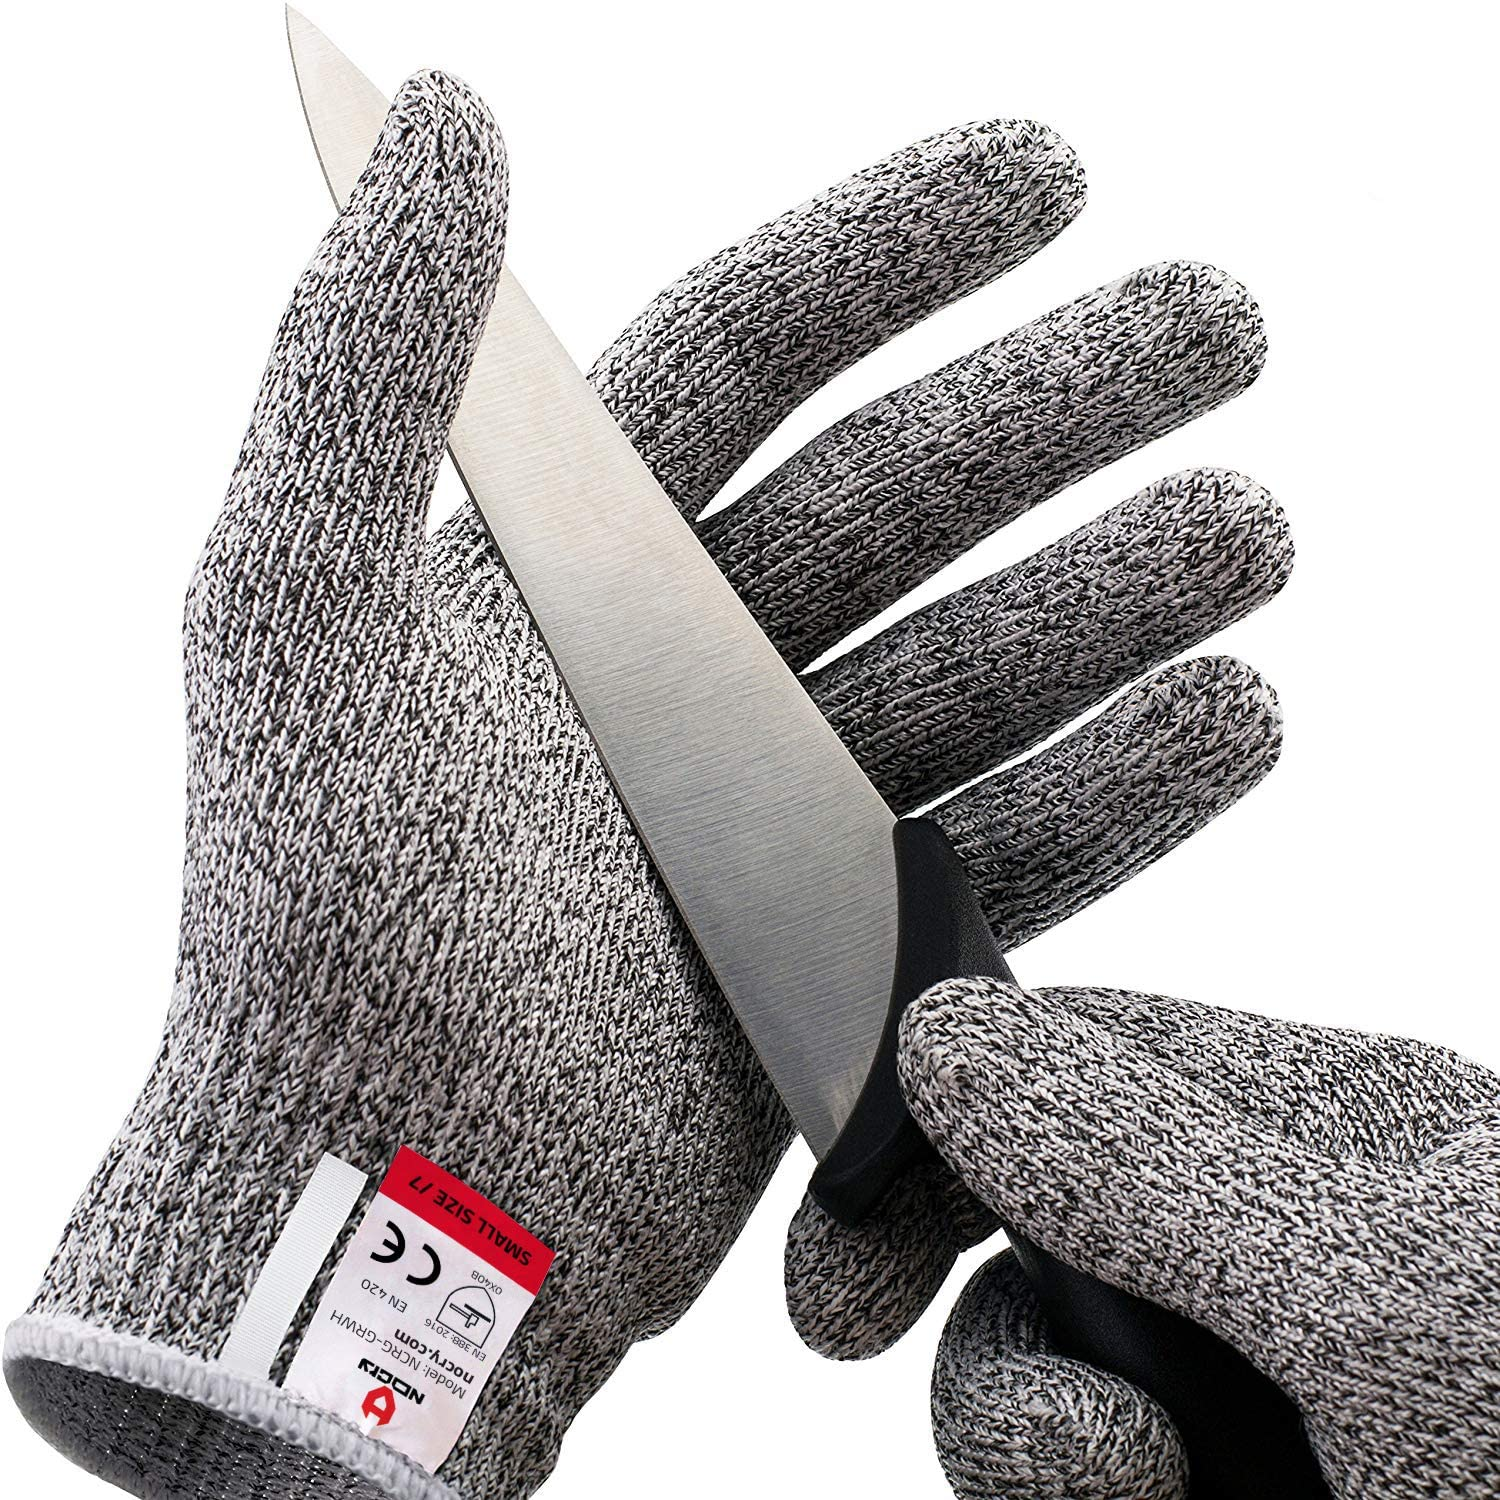 NoCry Cut Resistant Gloves - Ambidextrous, Food Grade, High Performance Level 5 Protection. Size Medium, Complimentary Ebook Included - -